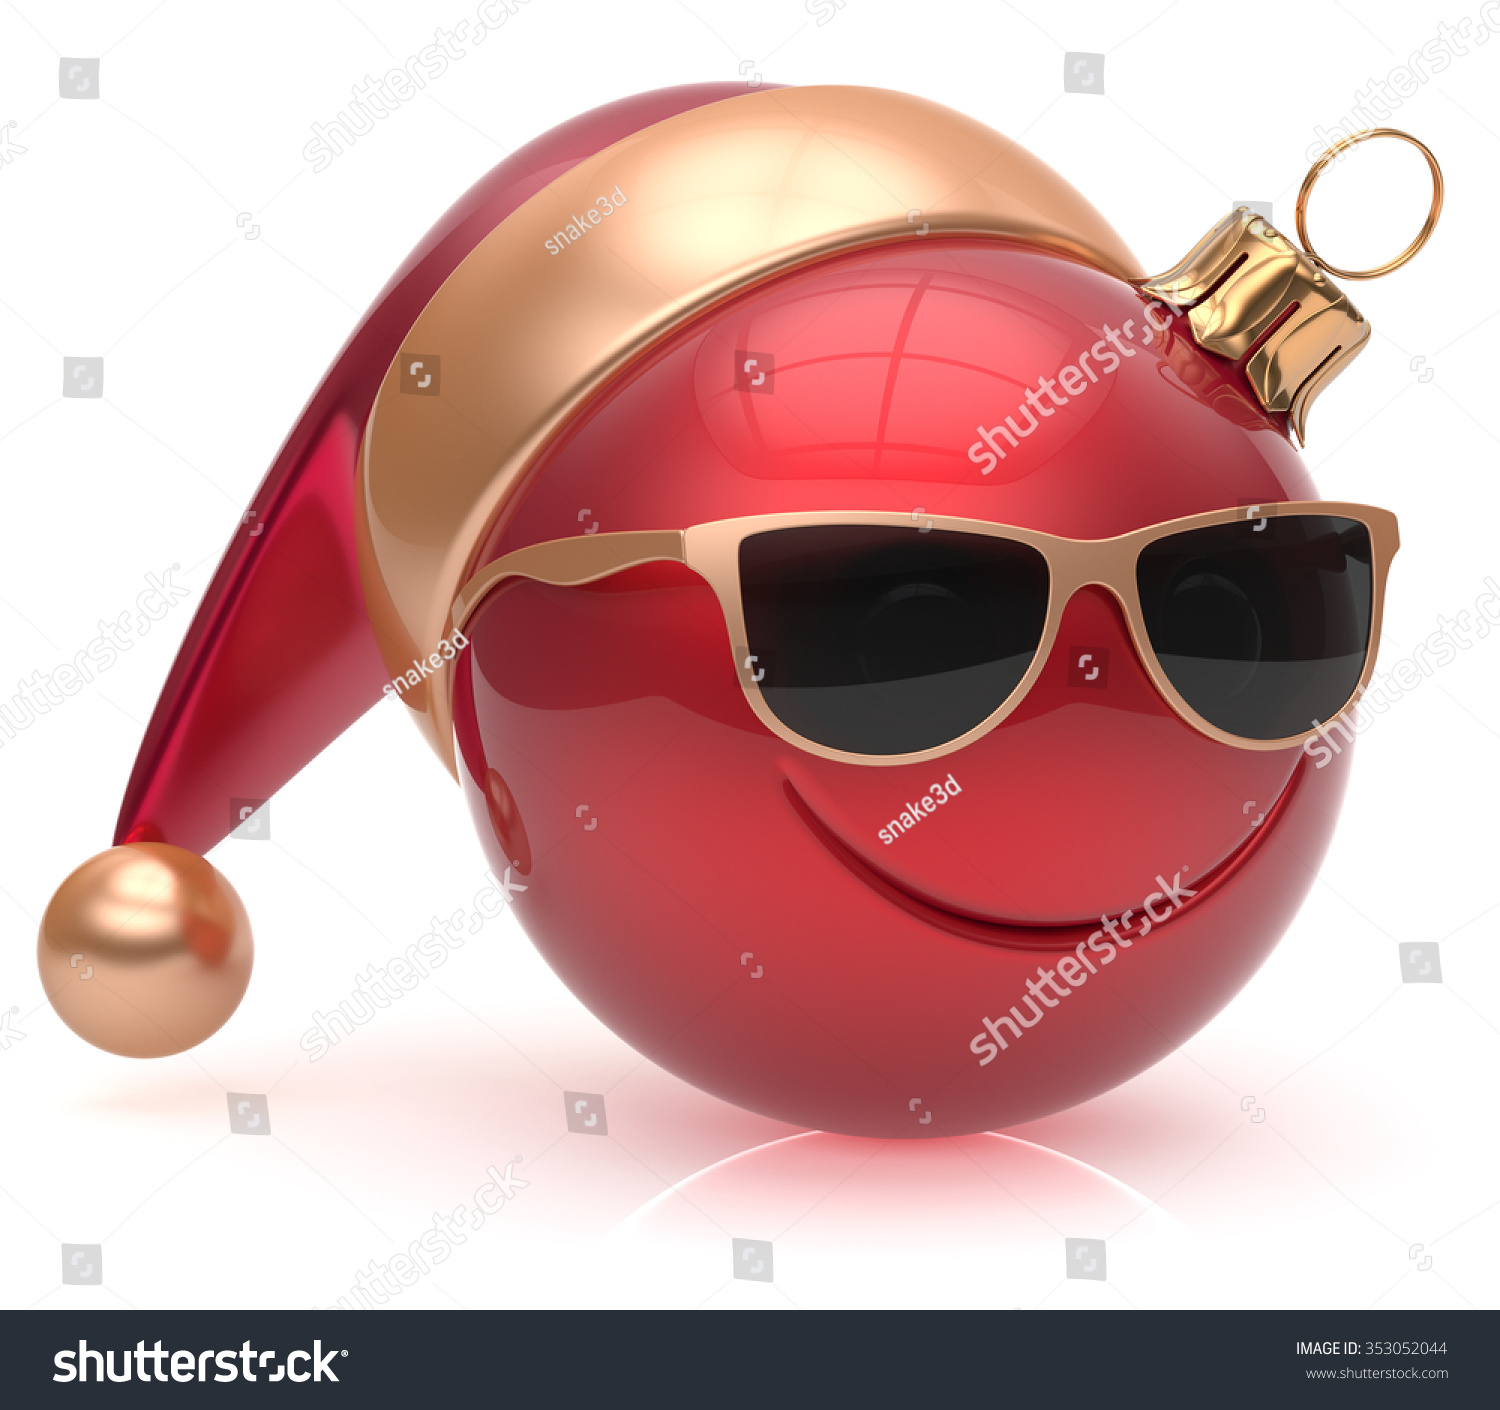 Christmas ball emoticon smiley face eyeglasses adornment